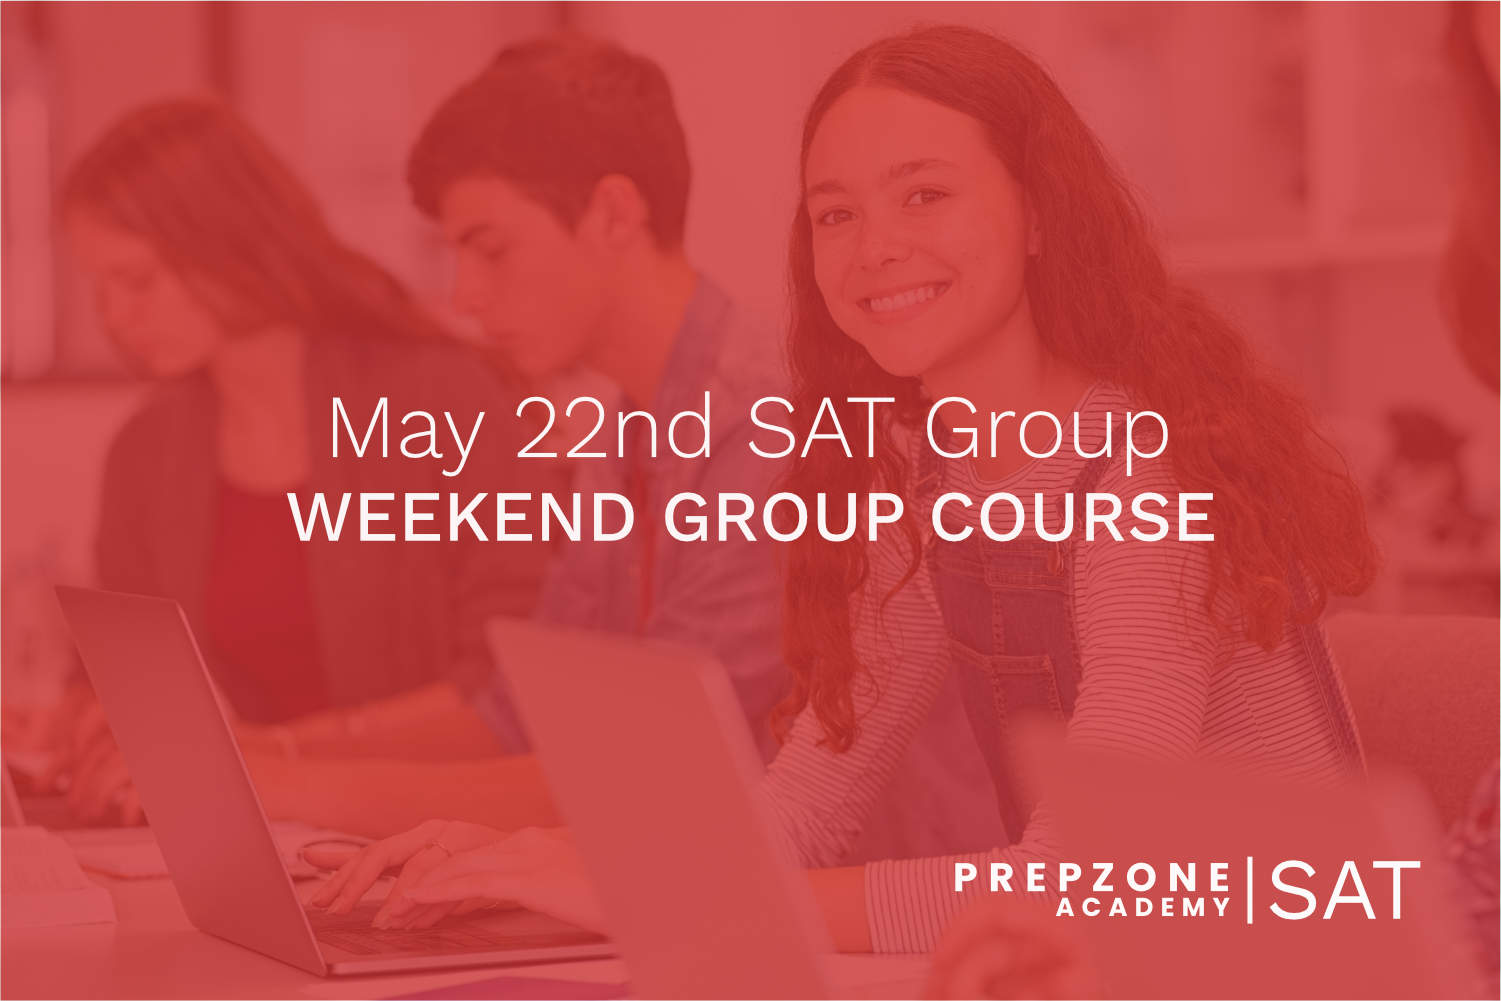 SAT Weekend Group Course Schedule – May 22nd